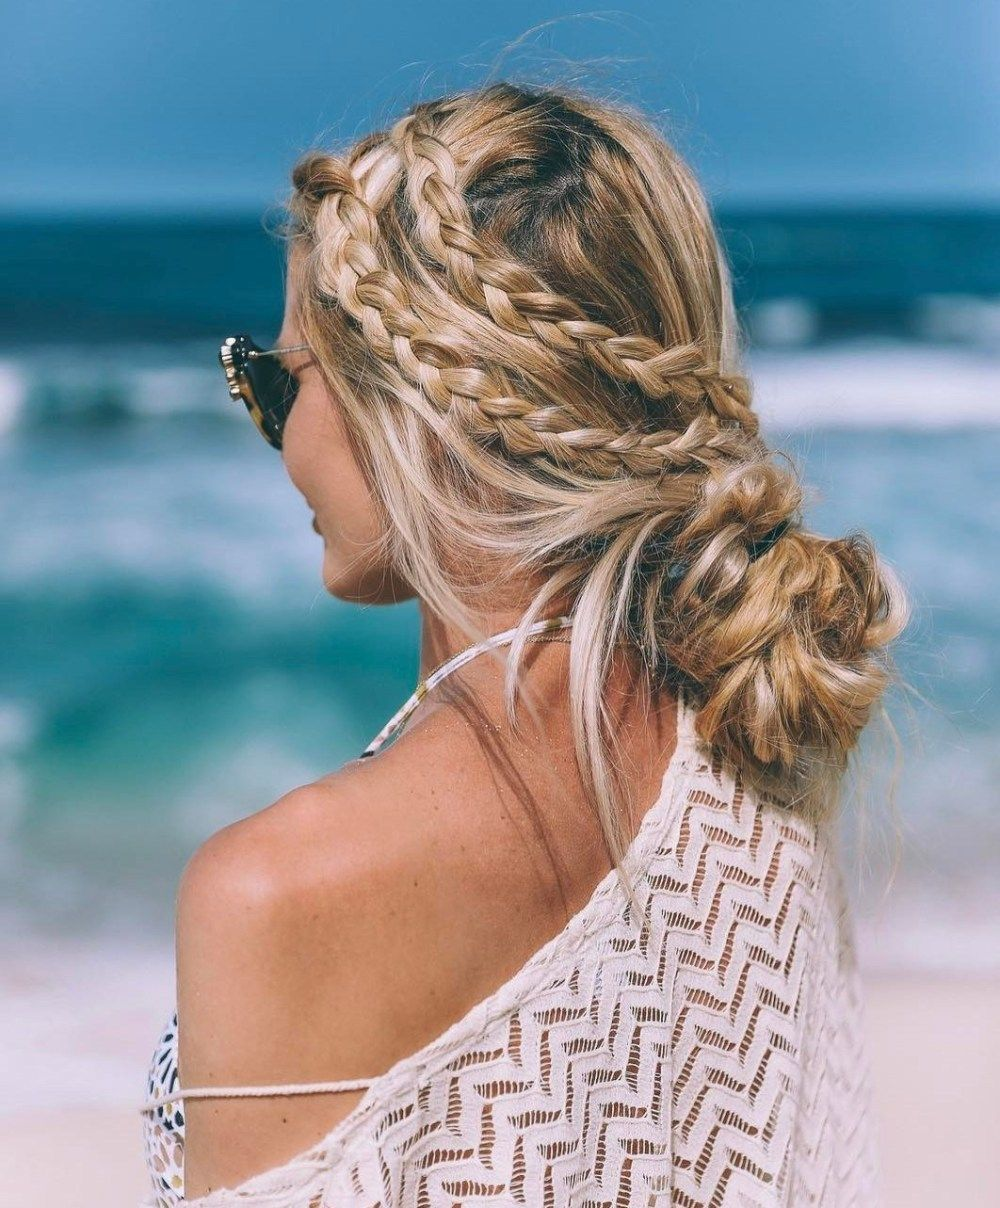 20 Inspiring Beach Hair Ideas for Beautiful Vacati